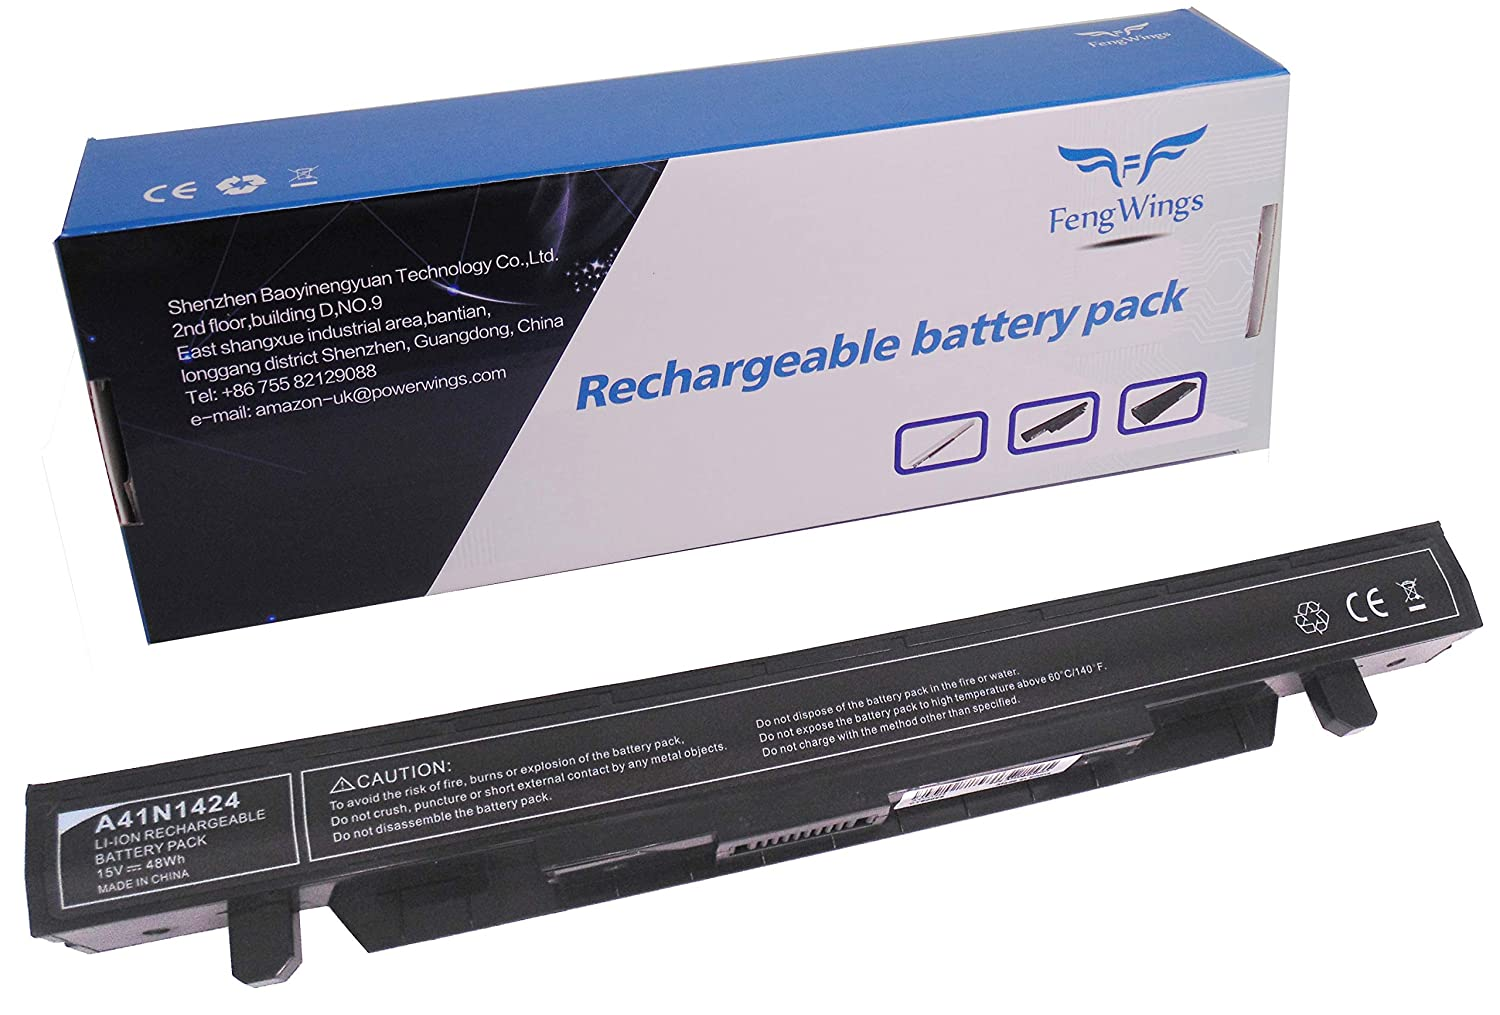 FengWings A41N1424 15V 48Wh 3200mAh Batterie pour ASUS GL552 GL552J GL552JX GL552V GL552VW ROG GL552 GL552J GL552JX GL552V GL552VW ZX50 ZX50J ZX50JX